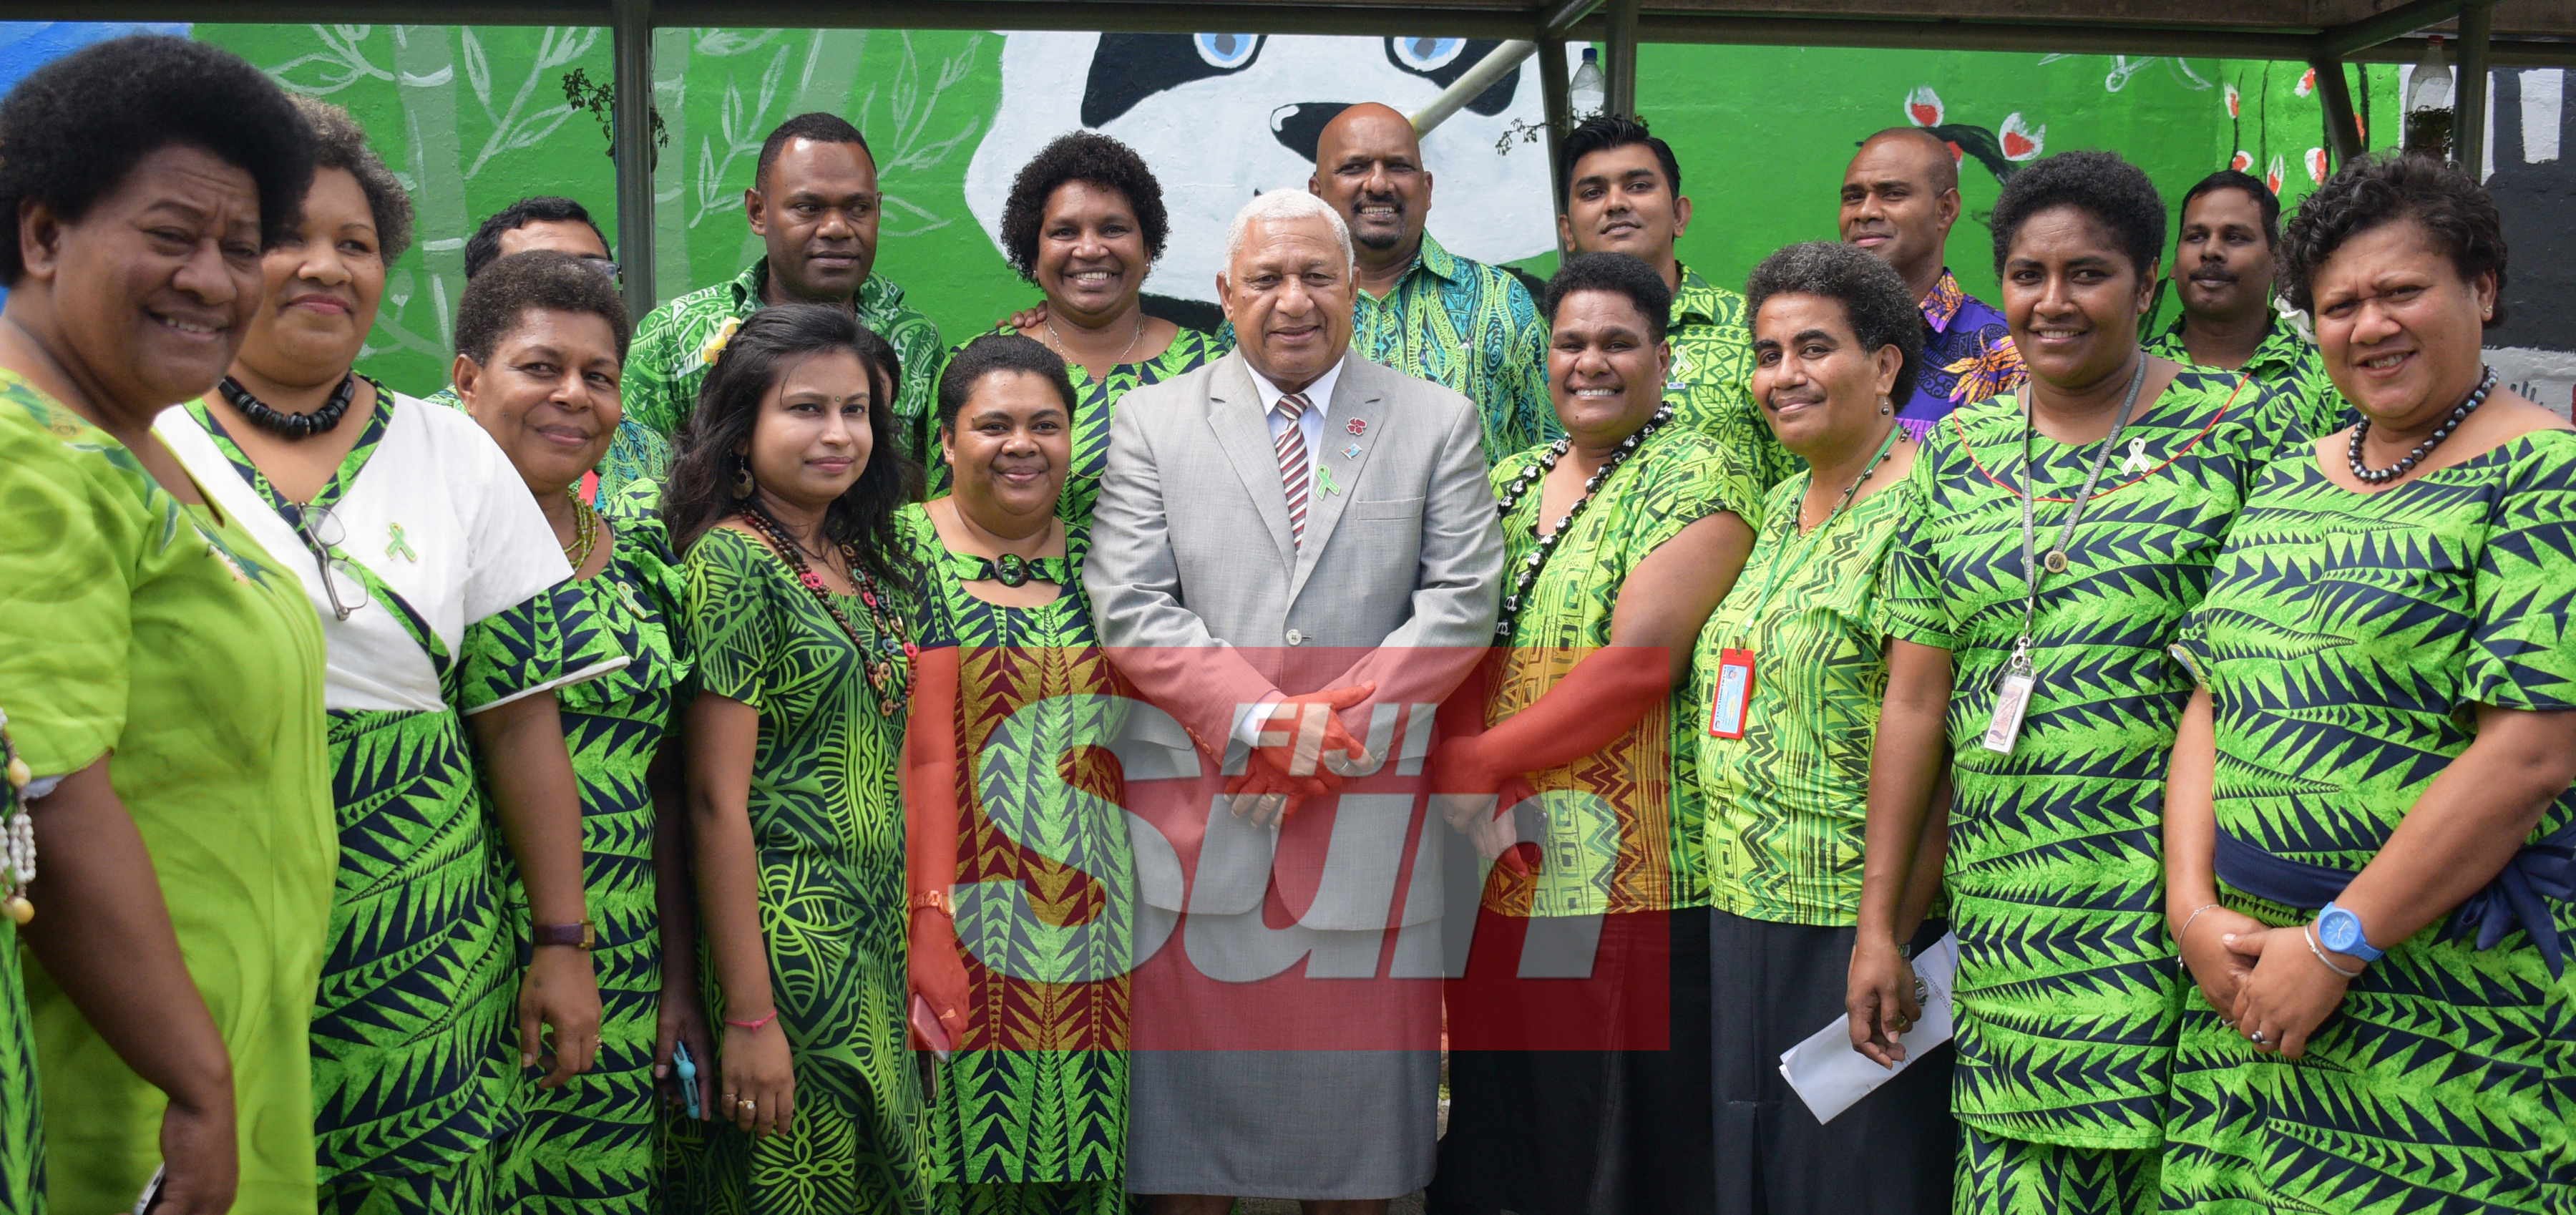 Prime Minister Voreqe Bainimarama with St. Giles Hospital staff after opening the Alcohol and Drug unit (AOD Unit) at the hospital on November 6, 2019. Photo: Ronald Kumar.